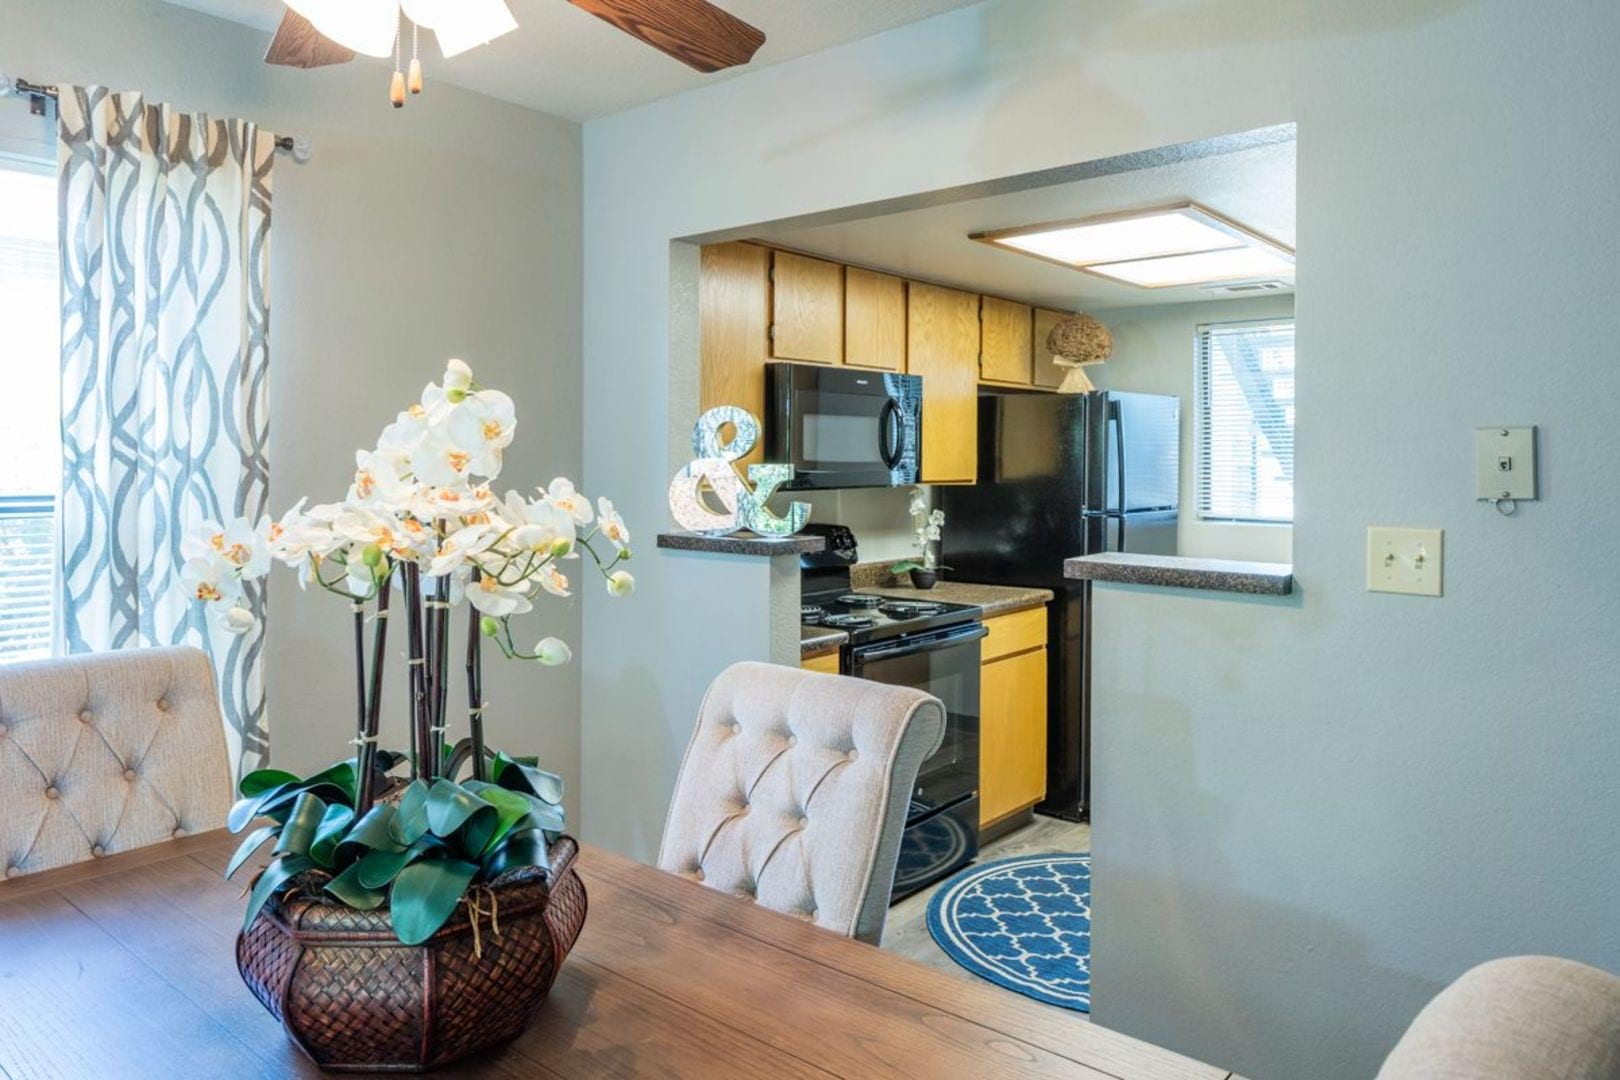 Apartments For Rent In Kansas City With Large Kitchens And Closets